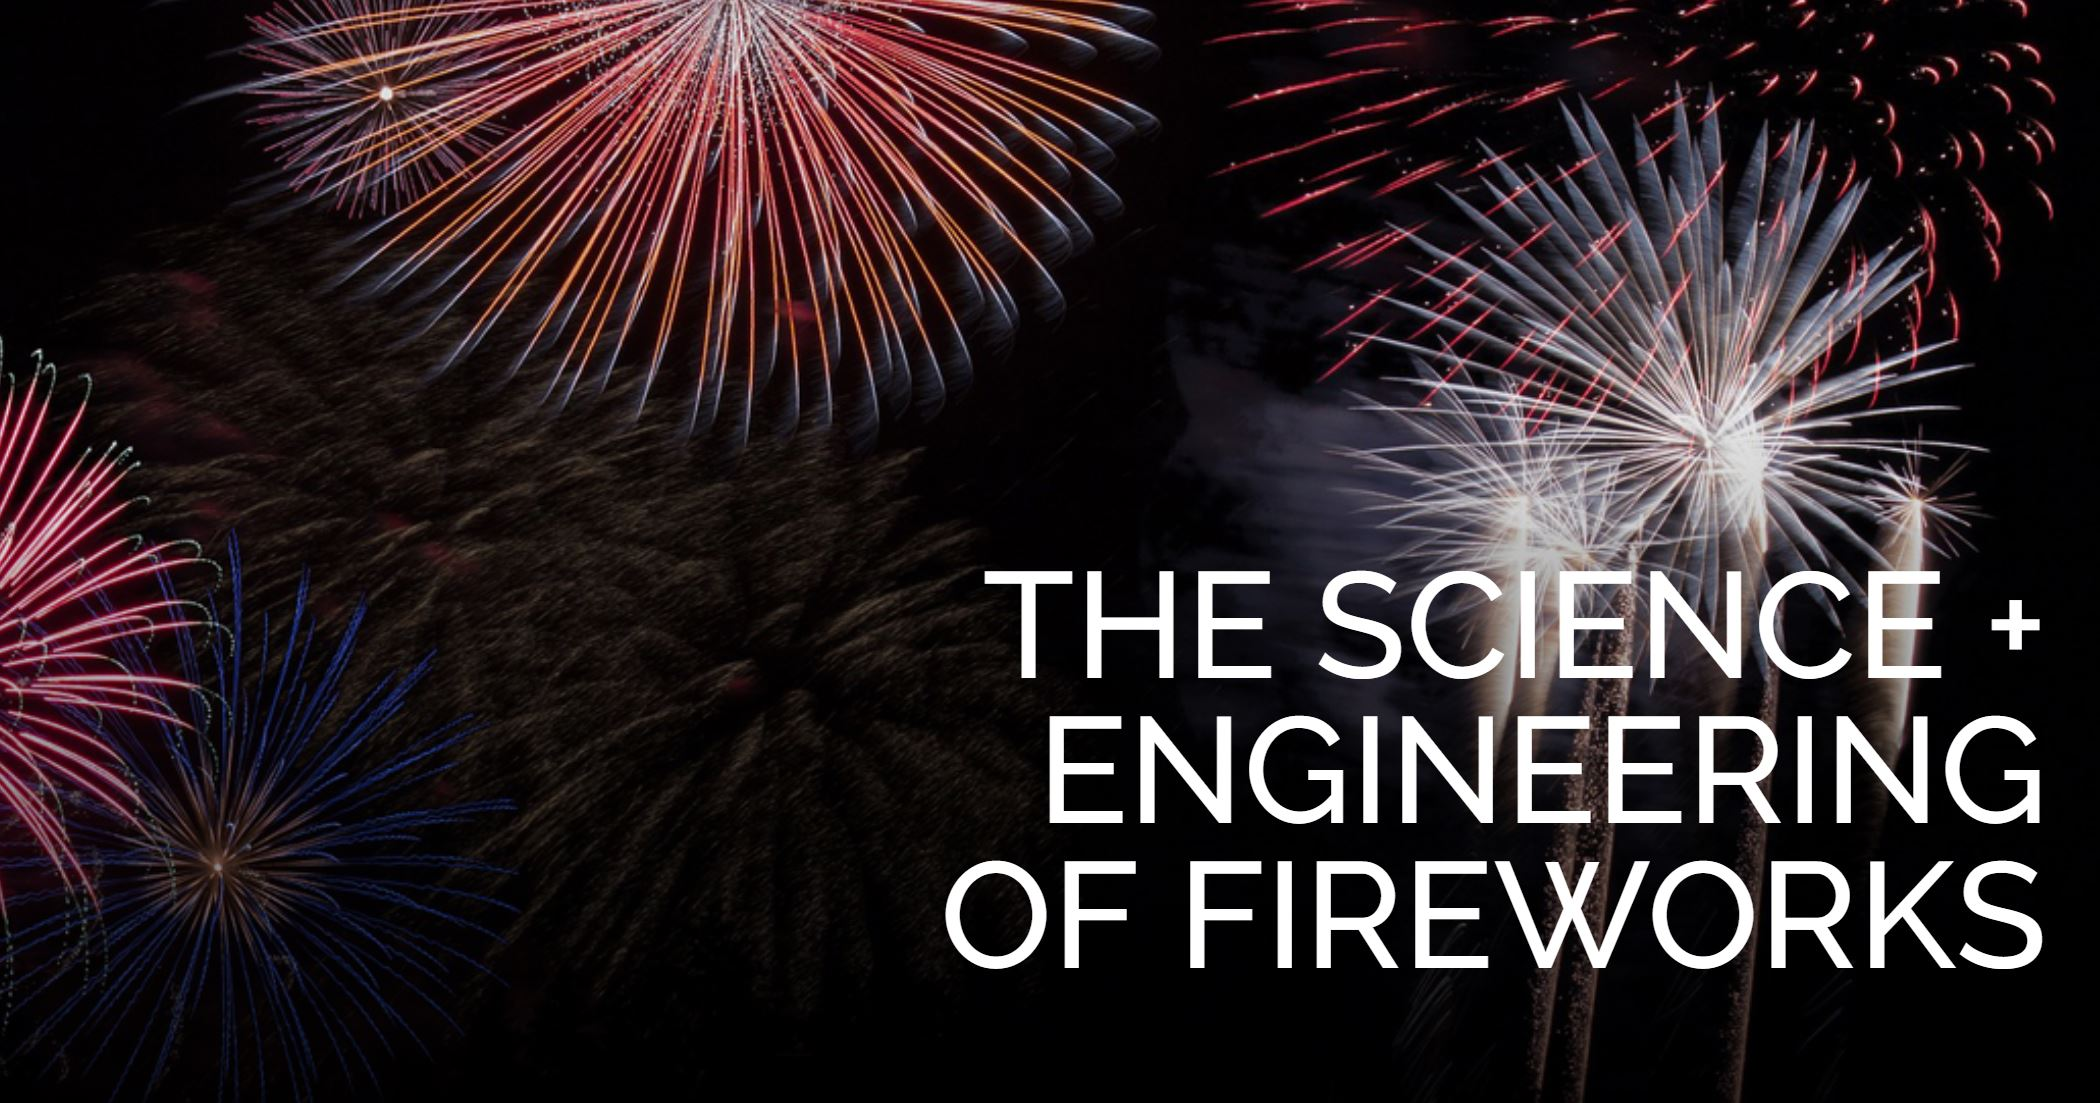 Happy Independence Day from ITEEA!